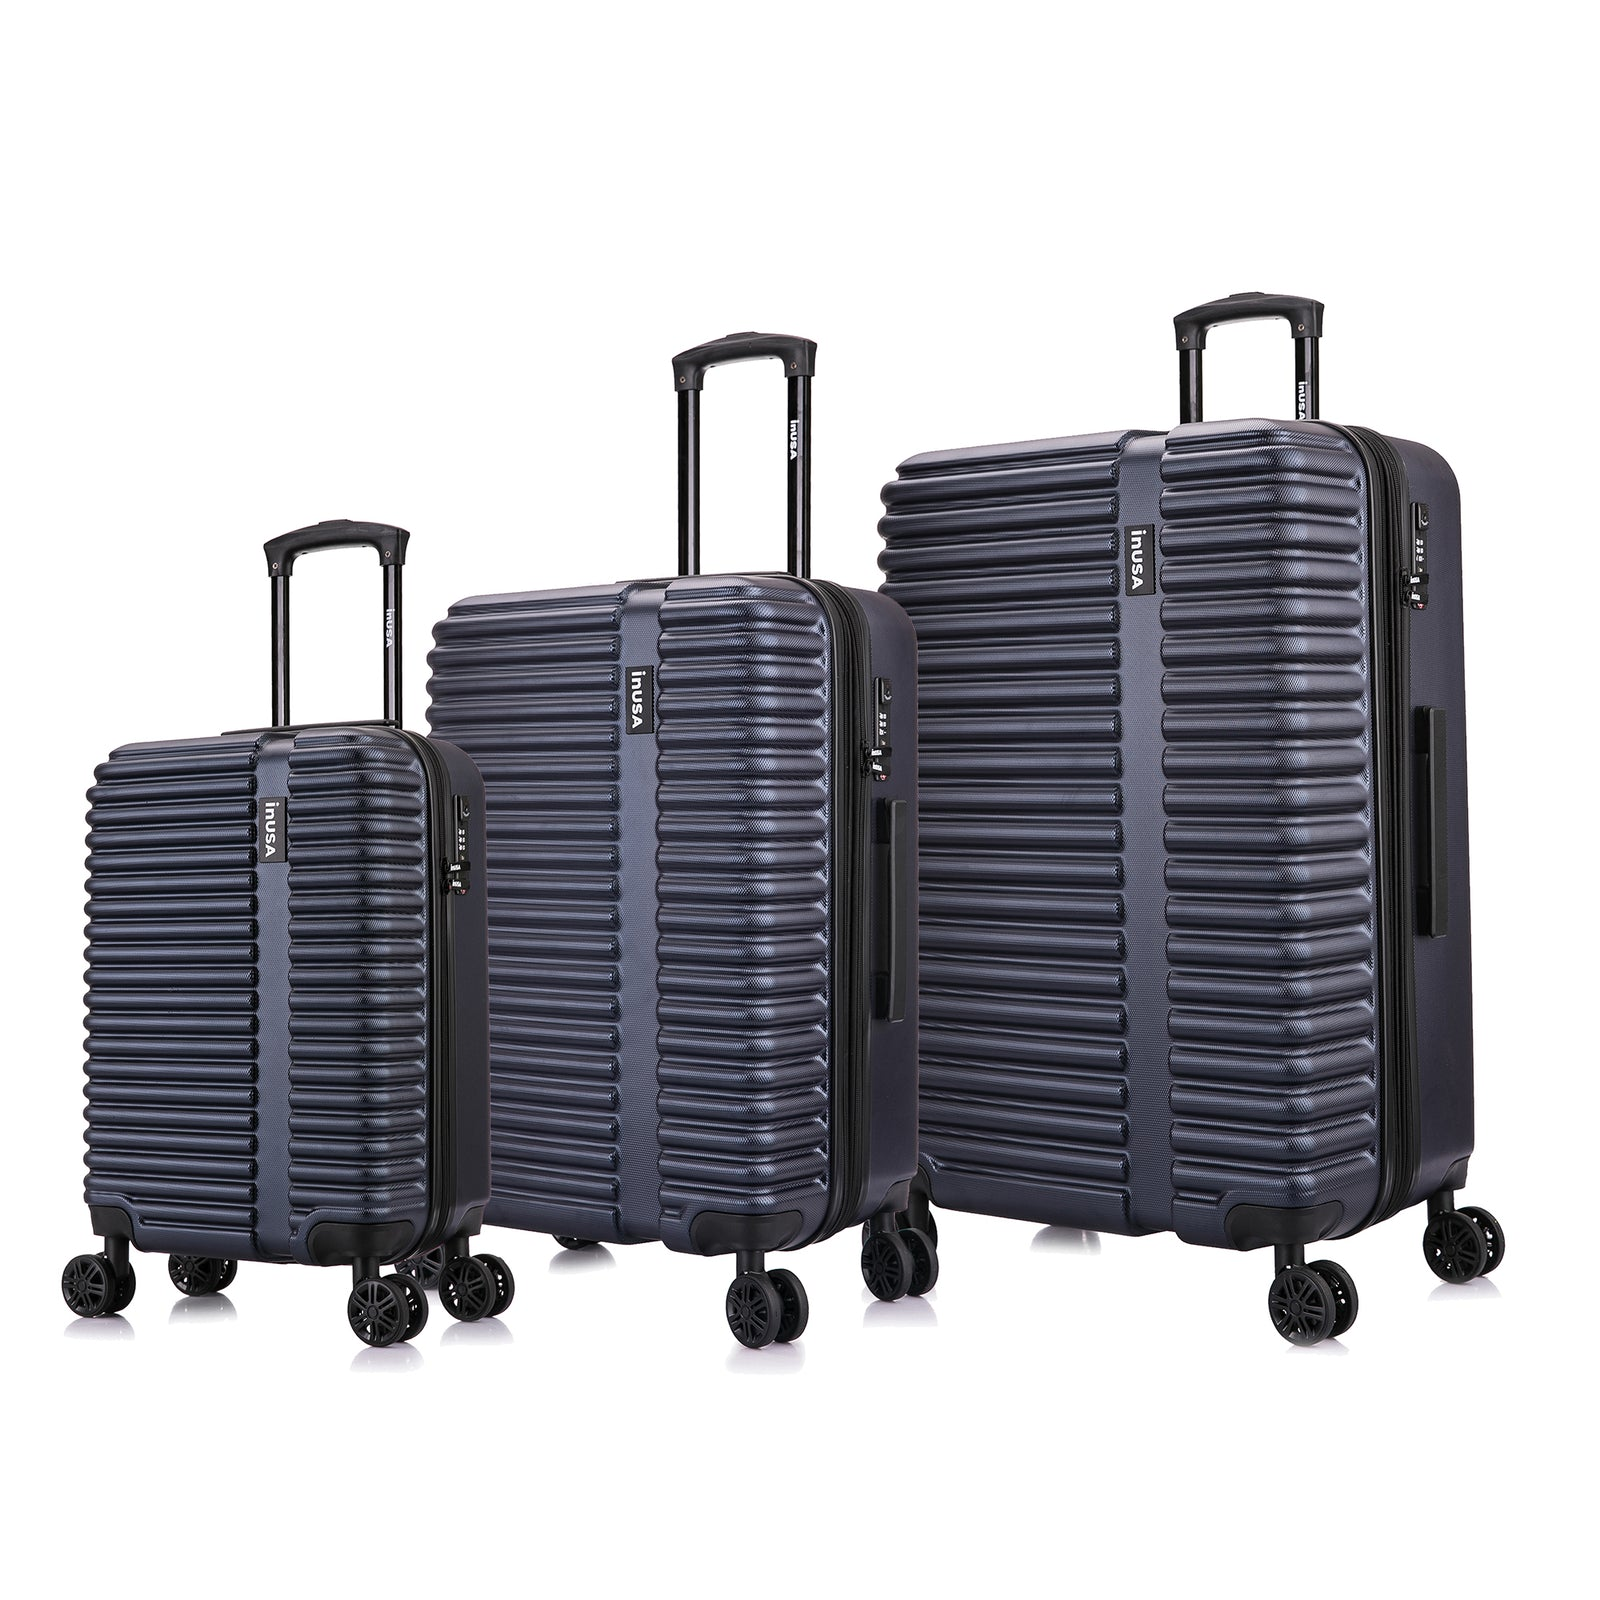 Load image into Gallery viewer, Ally, hardside, 3 piece set, smal, medium, large, luggage set, 8 wheels, 4 wheels